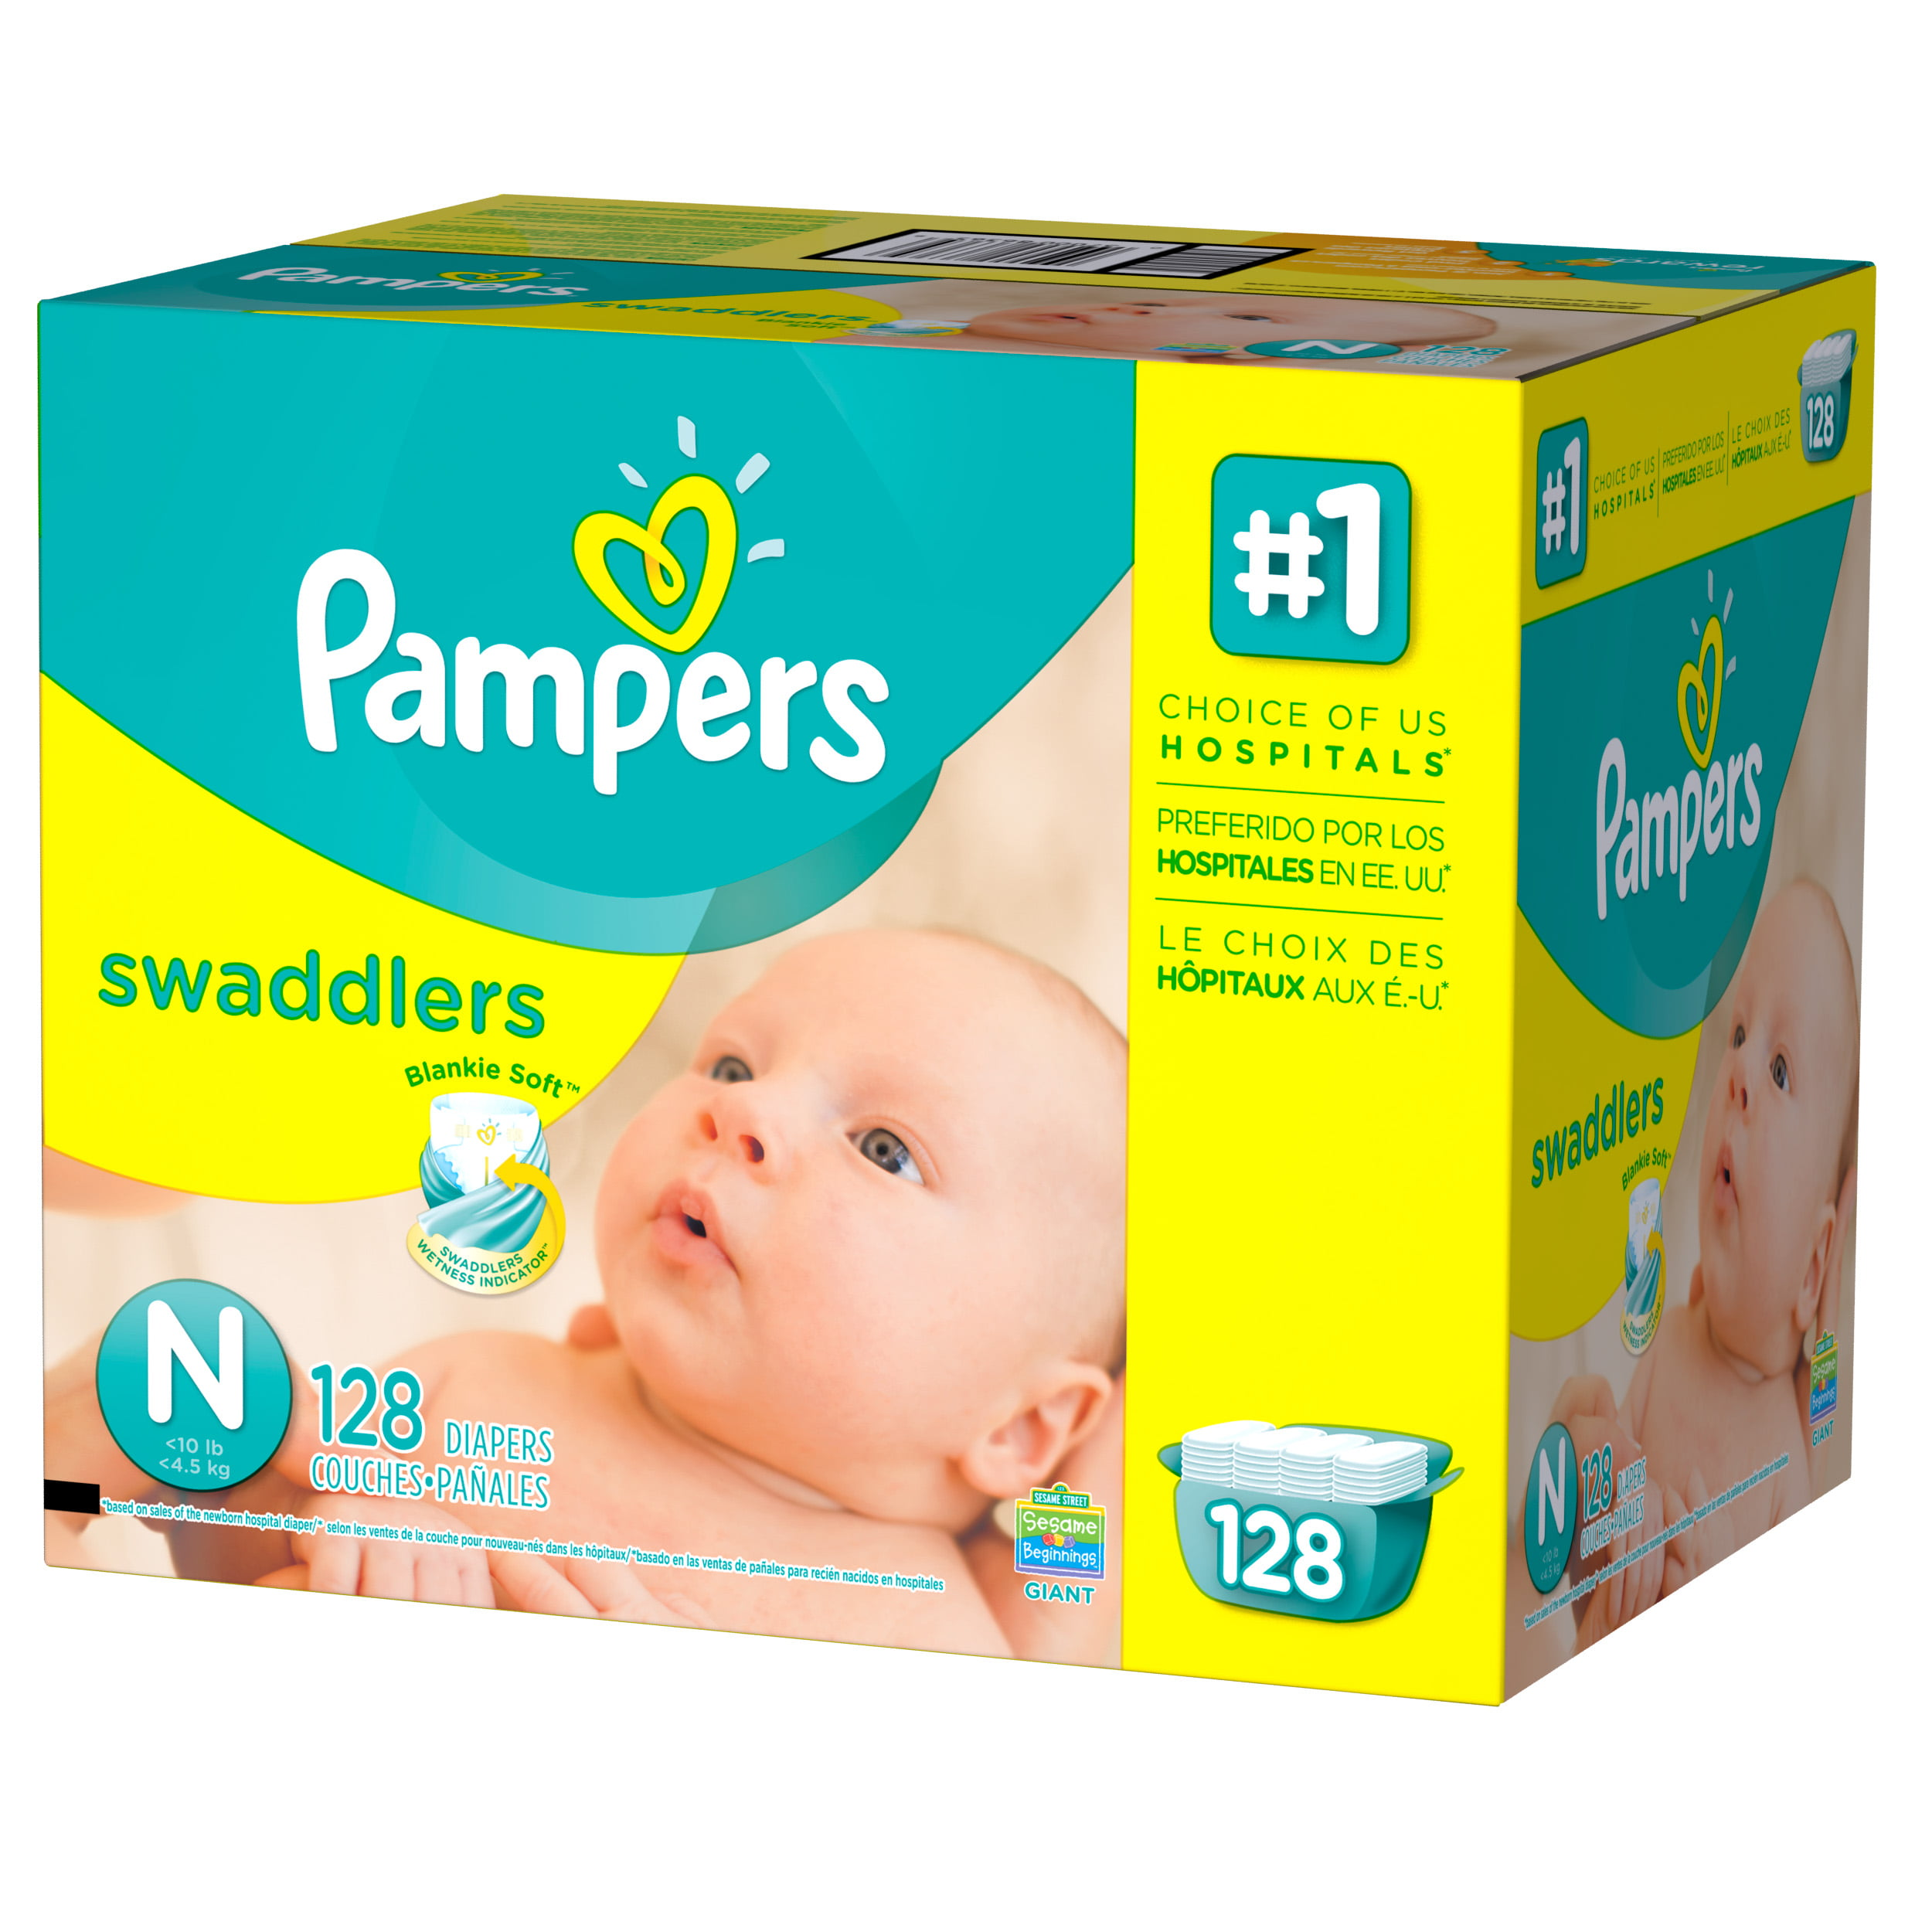 Pampers Swaddlers Newborn Diapers Size 0 128 count ...